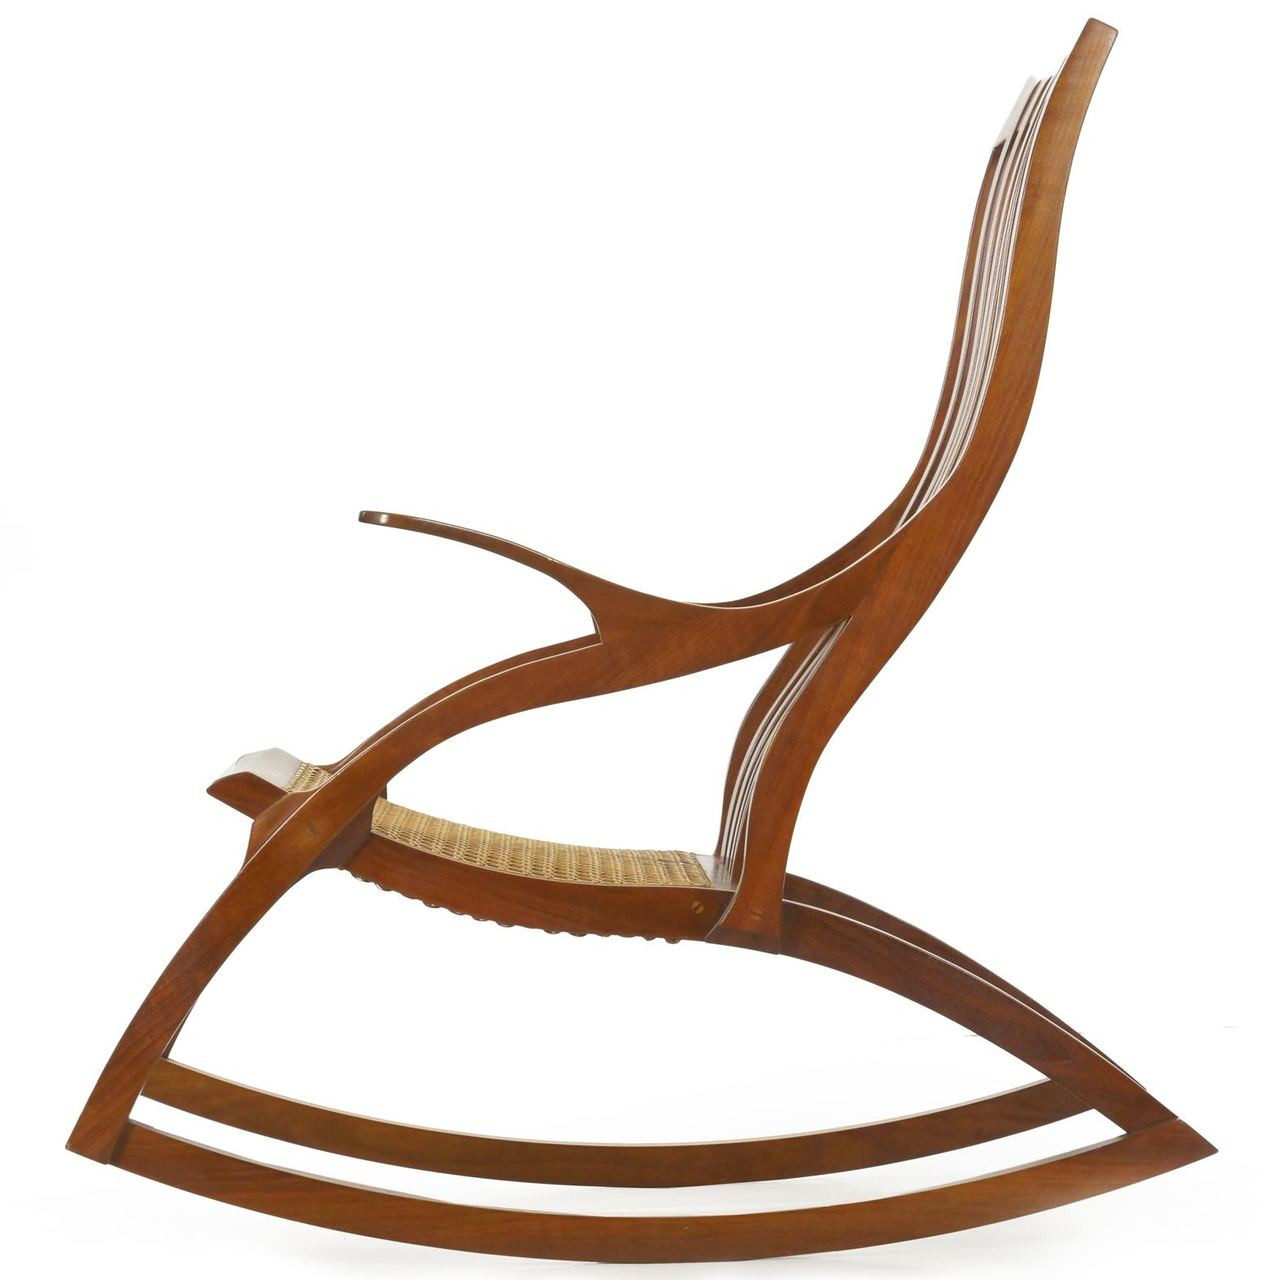 Stupendous American Studio Cherrywood Rocking Chair W Dovetailed Frame Gmtry Best Dining Table And Chair Ideas Images Gmtryco